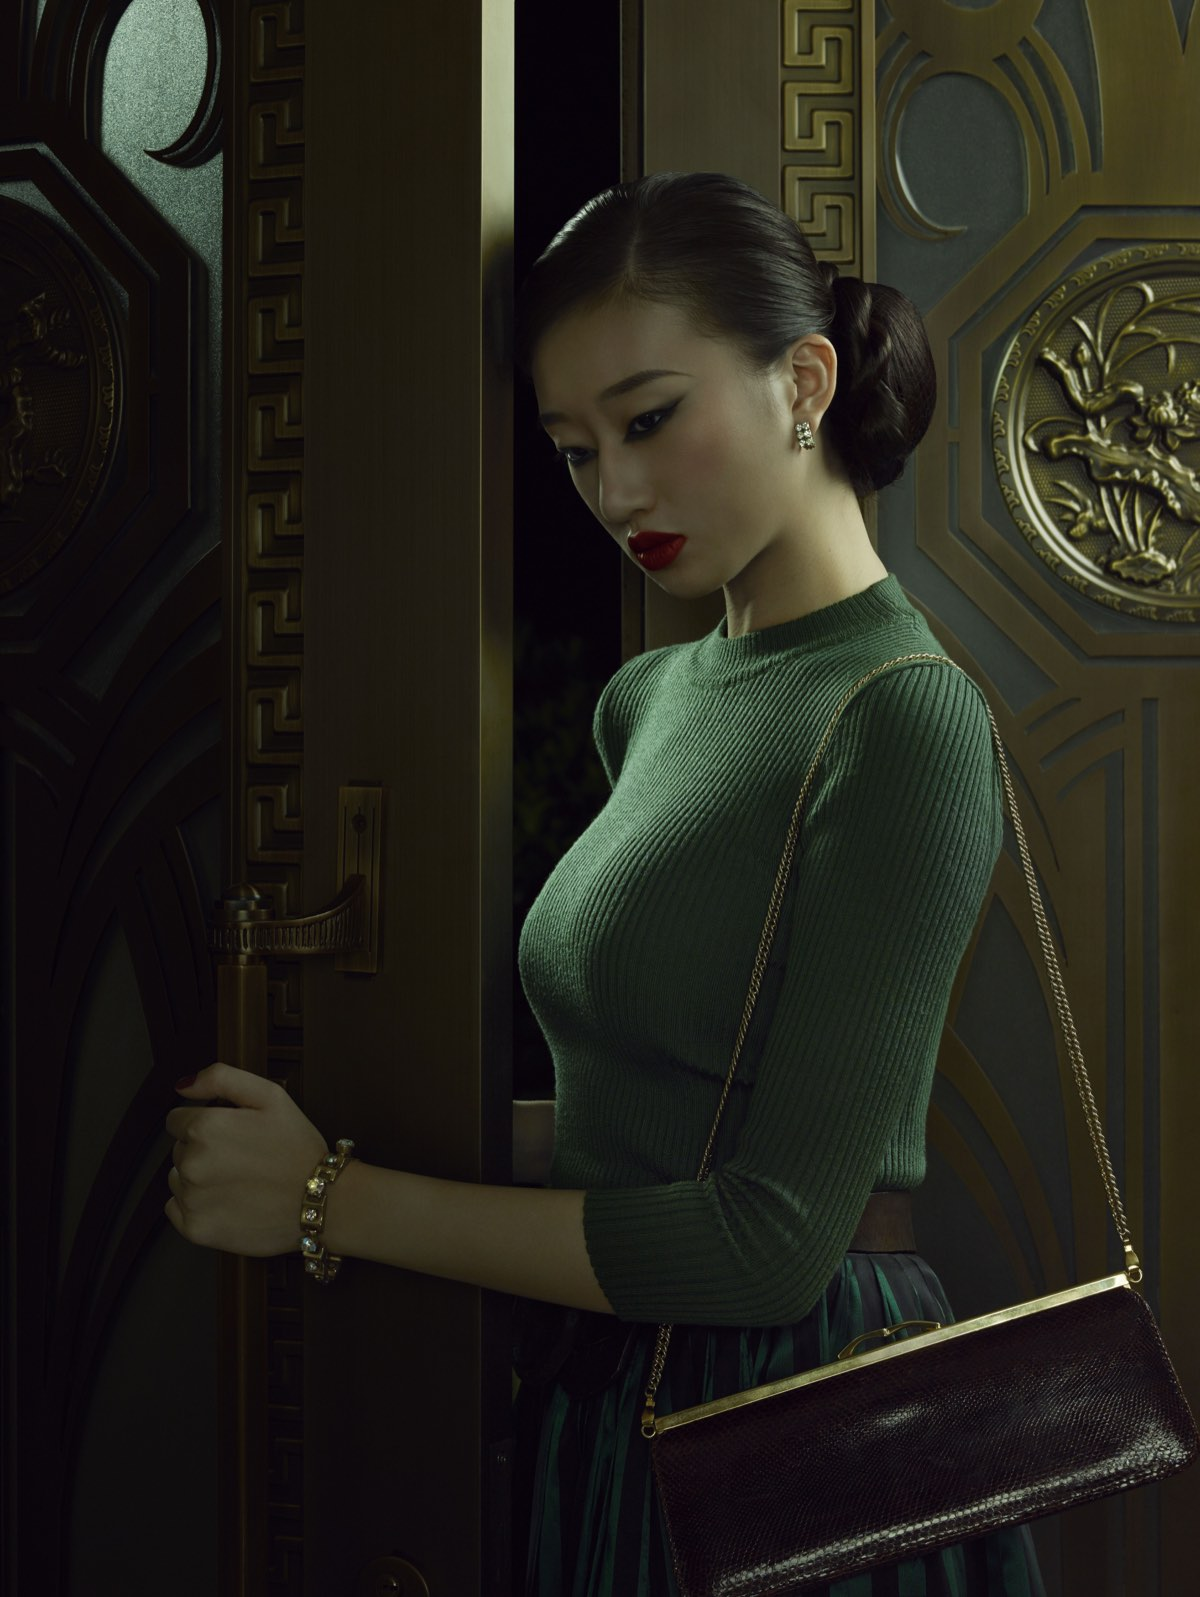 shanghai-erwin-olaf3-photography-of-china.jpeg